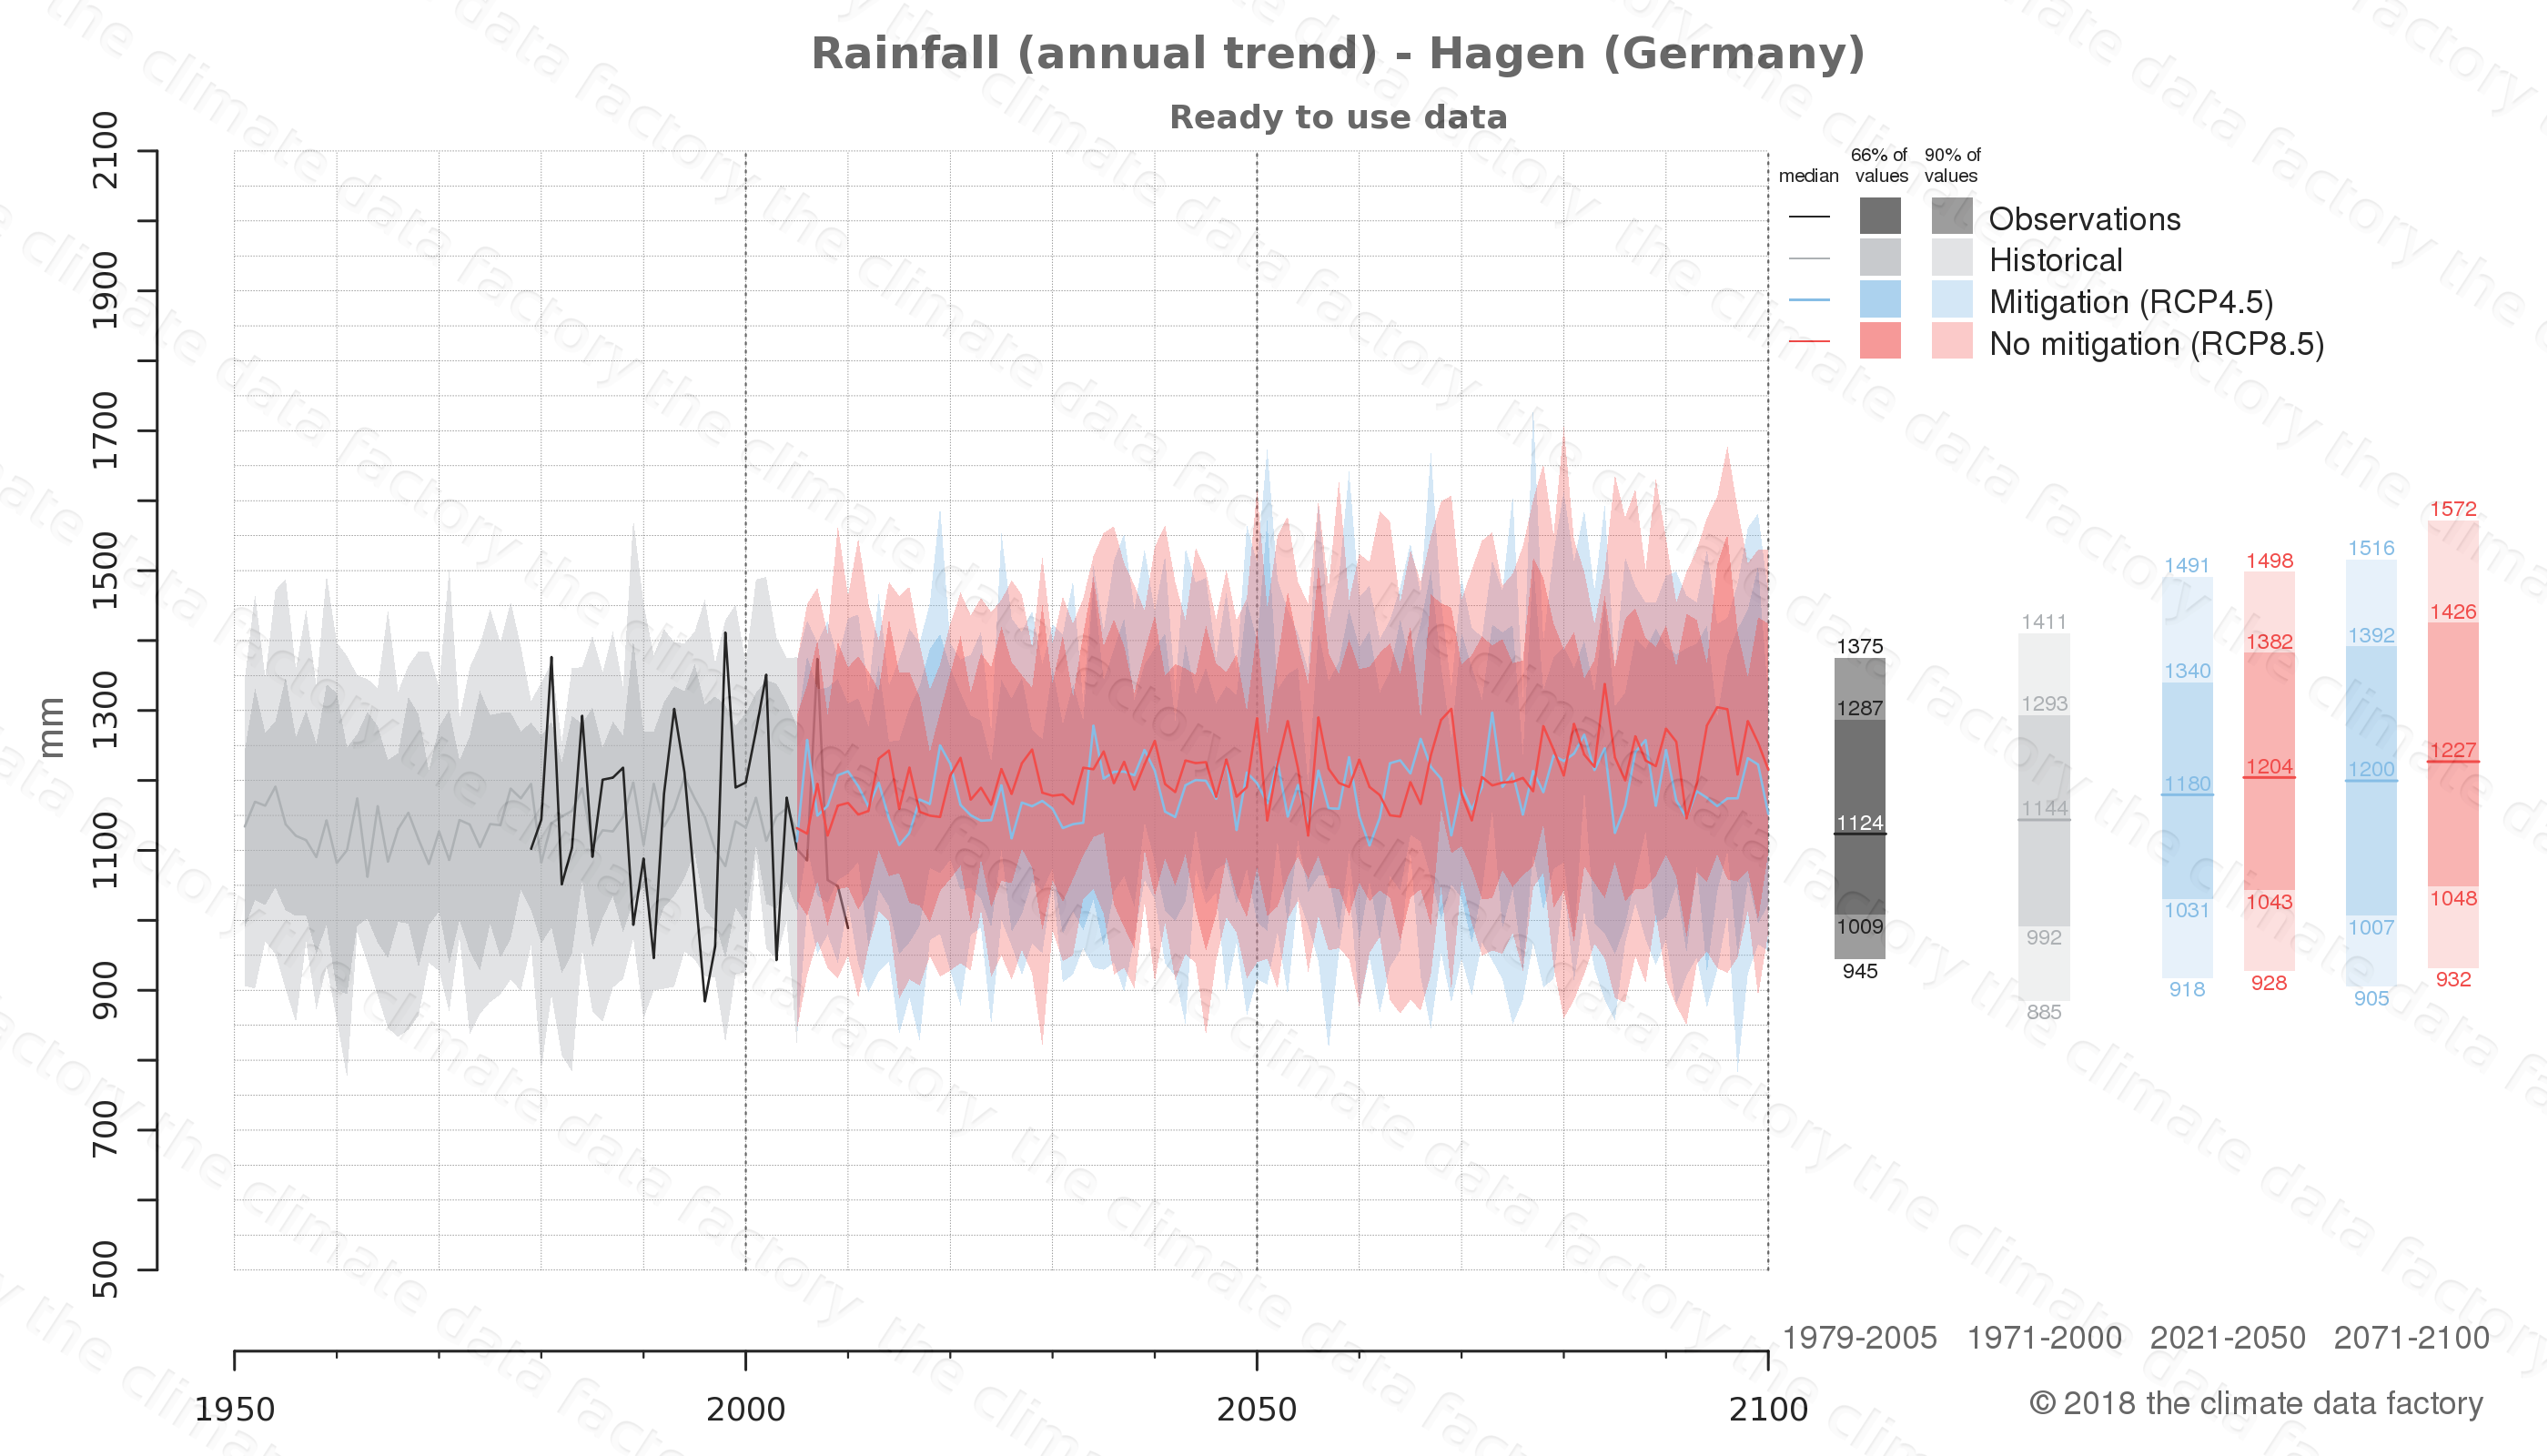 climate change data policy adaptation climate graph city data rainfall hagen germany